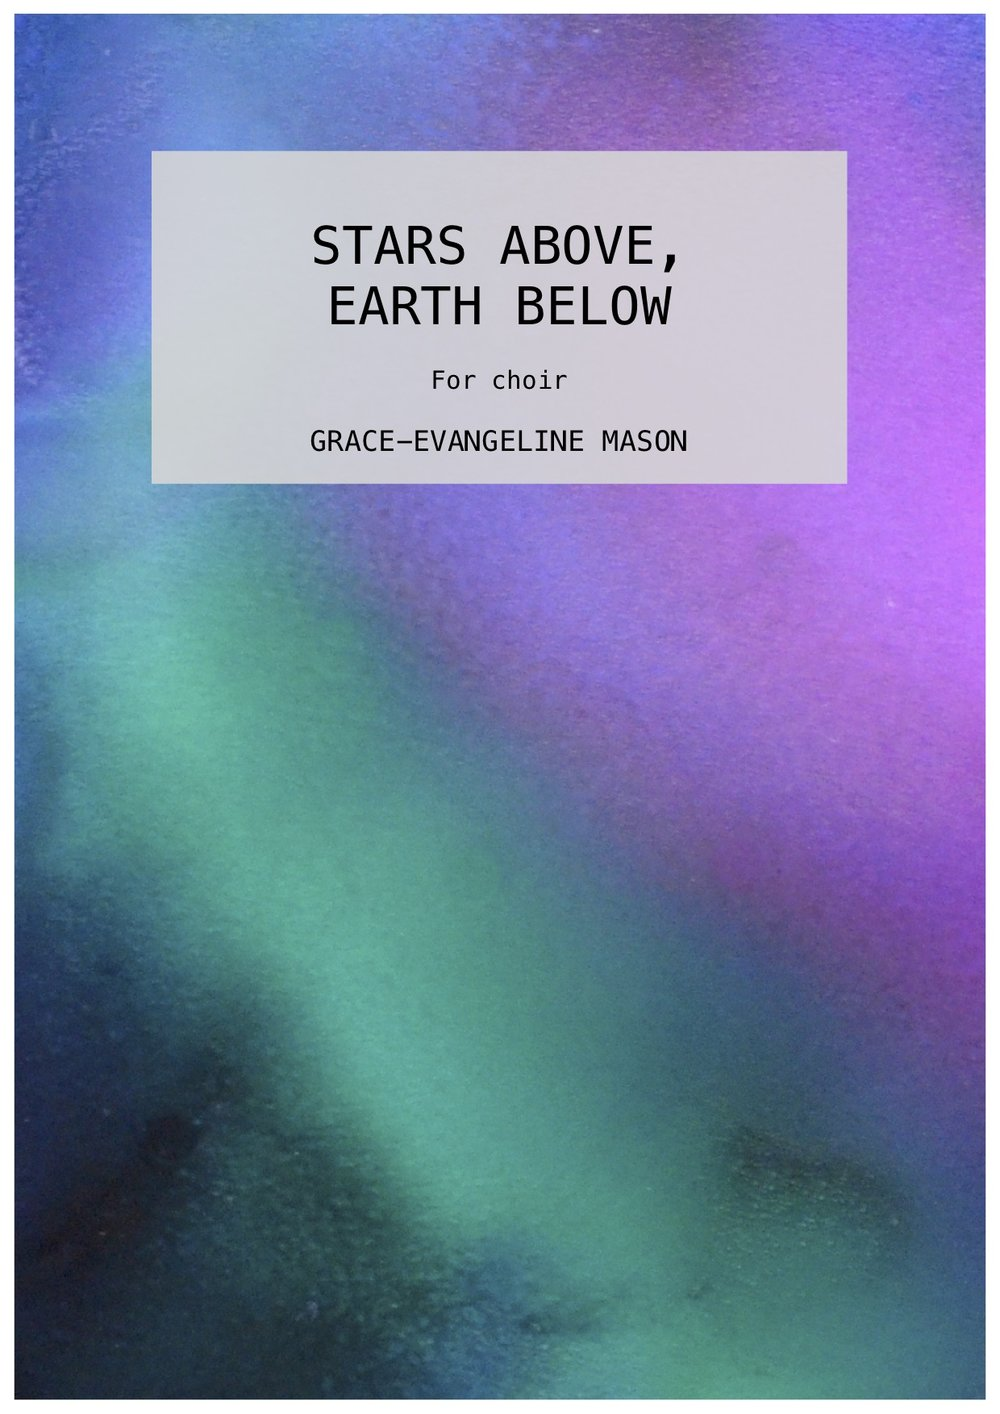 'Stars Above, Earth Below' (2019) - For SATB choirApprox. Duration: 4'Written for the BBC SingersA setting of 'Leaves' by Sara TeasdaleLEAVESONE by one, like leaves from a tree,All my faiths have forsaken me; But the stars above my head Burn in white and delicate red, And beneath my feet the earth Brings the sturdy grass to birth. I who was content to beBut a silken-singing tree,But a rustle of delightIn the wistful heart of night,I have lost the leaves that knew Touch of rain and weight of dew. Blinded by a leafy crownI looked neither up nor down— But the little leaves that die Have left me room to see the sky; Now for the first time I know Stars above and earth below.- Sara Teasdale©Cover Image: 'Stars Above' Painting by Grace-Evangeline Mason 2019